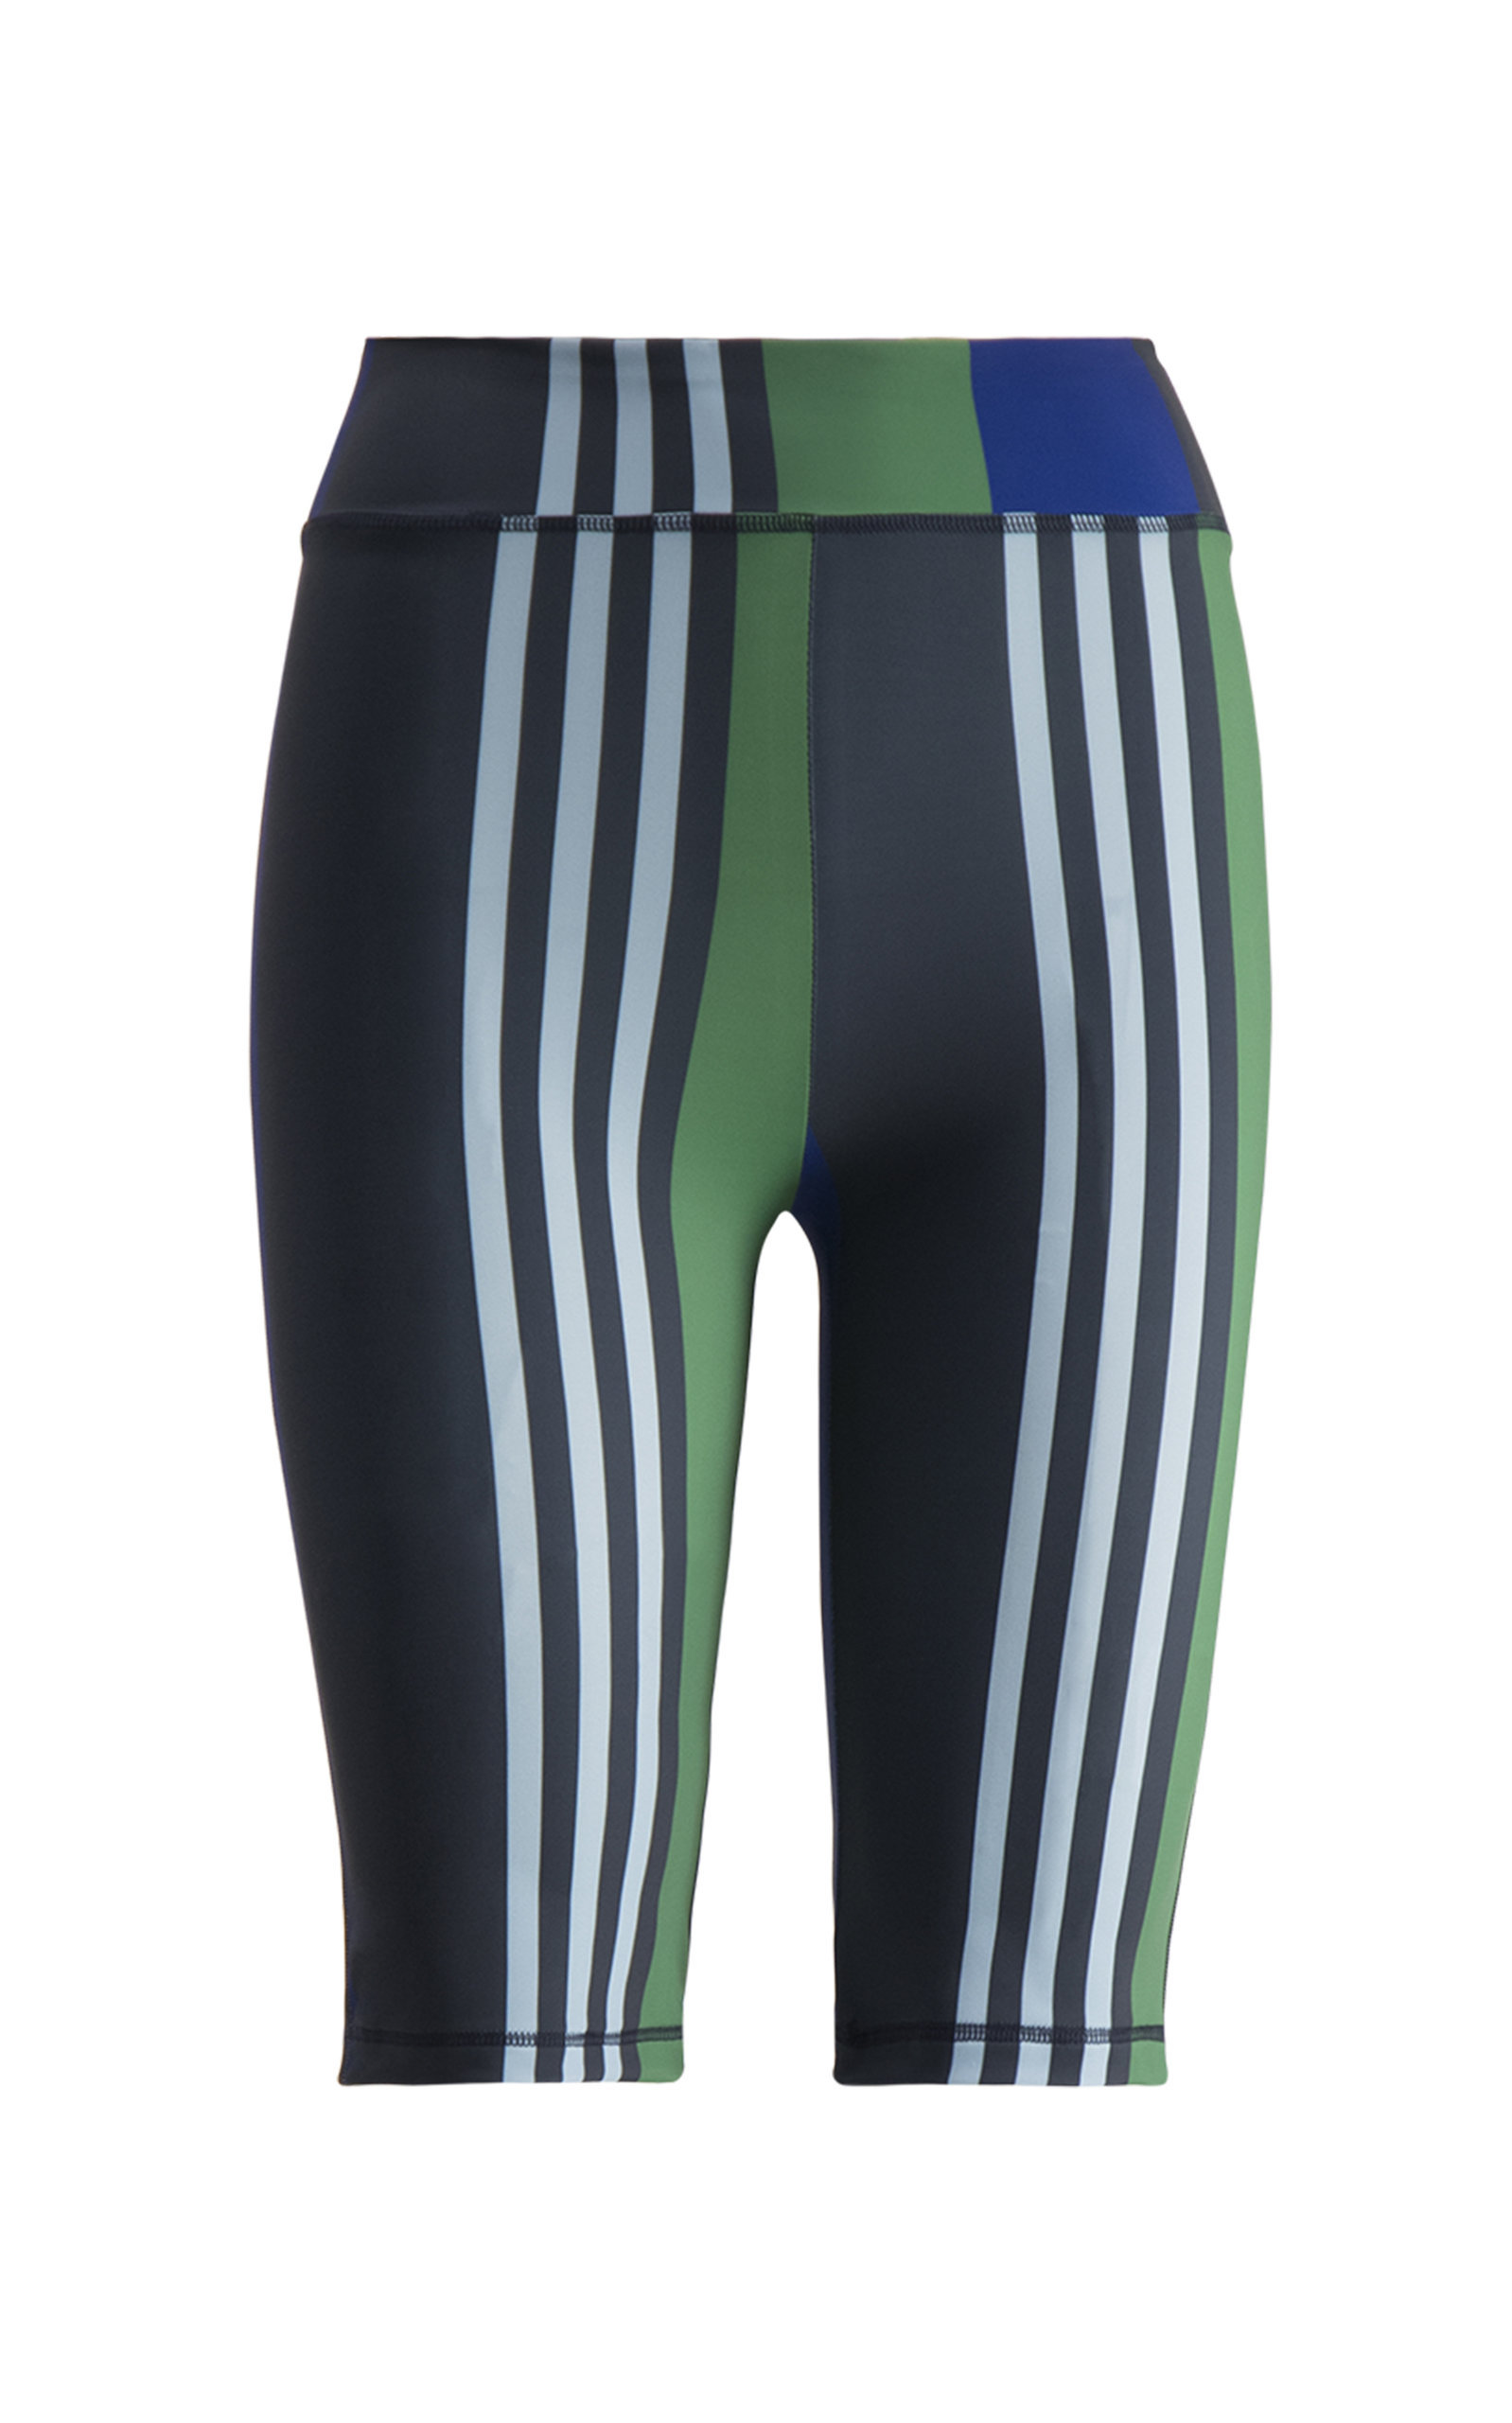 Striped Bicycle Shorts